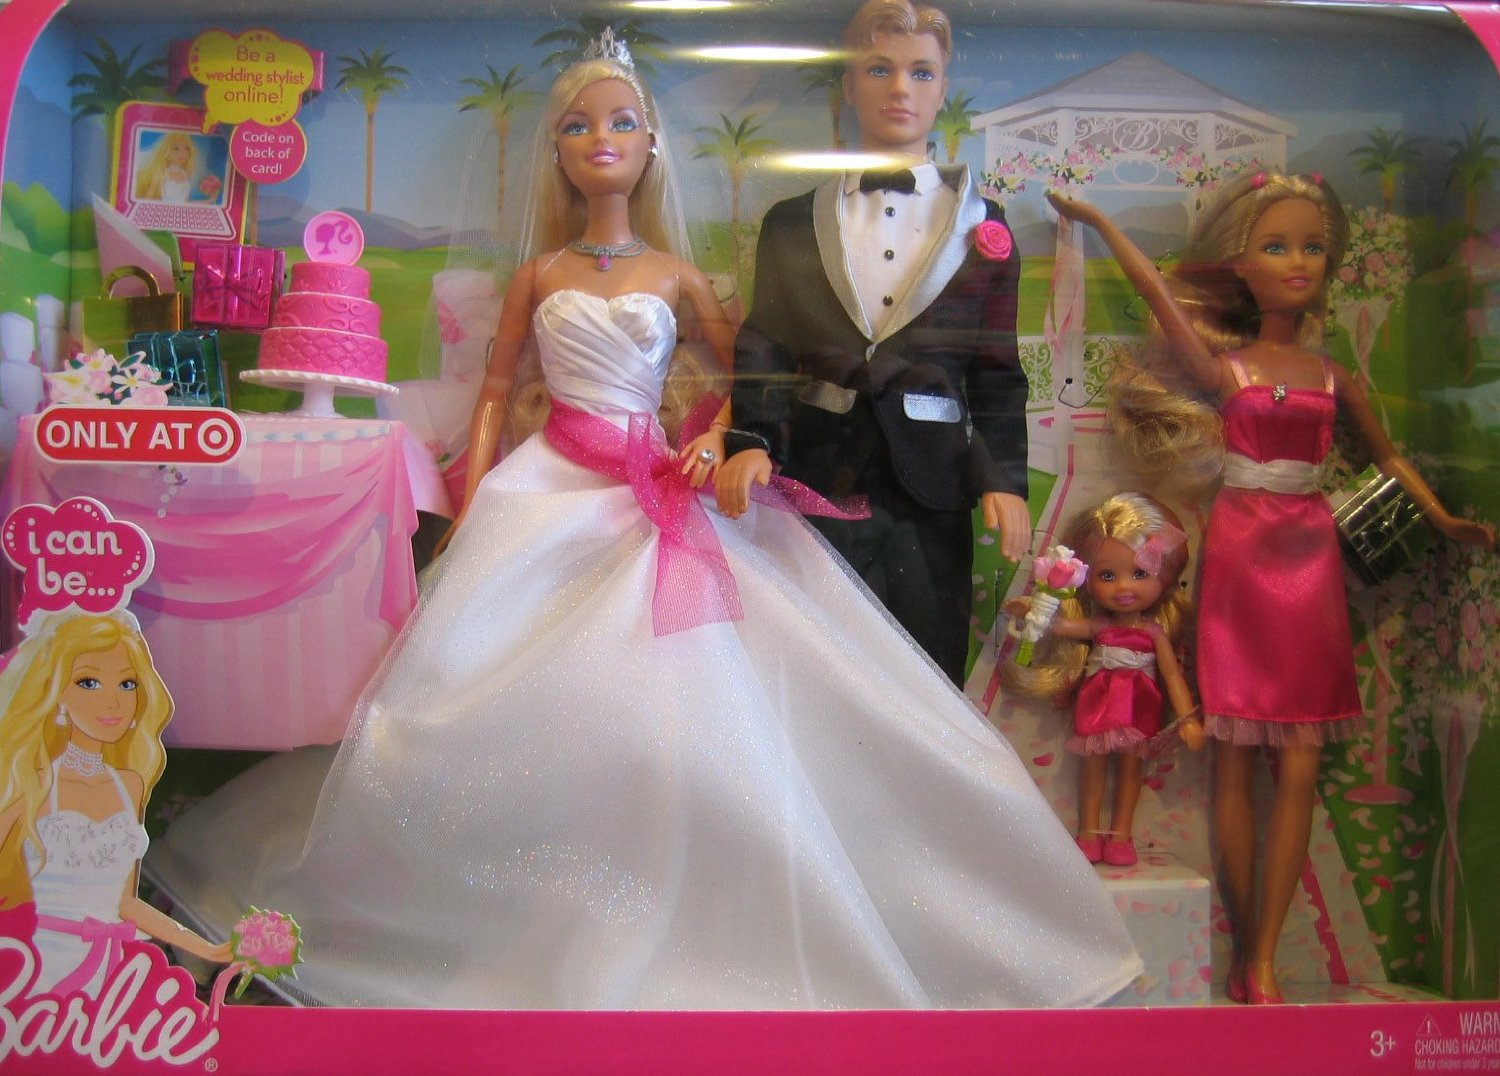 Wedding Gift Set Barbie : 2009 Barbie I Can Be Wedding Gift Set w Barbie, Ken, Skipper & Kelly ...